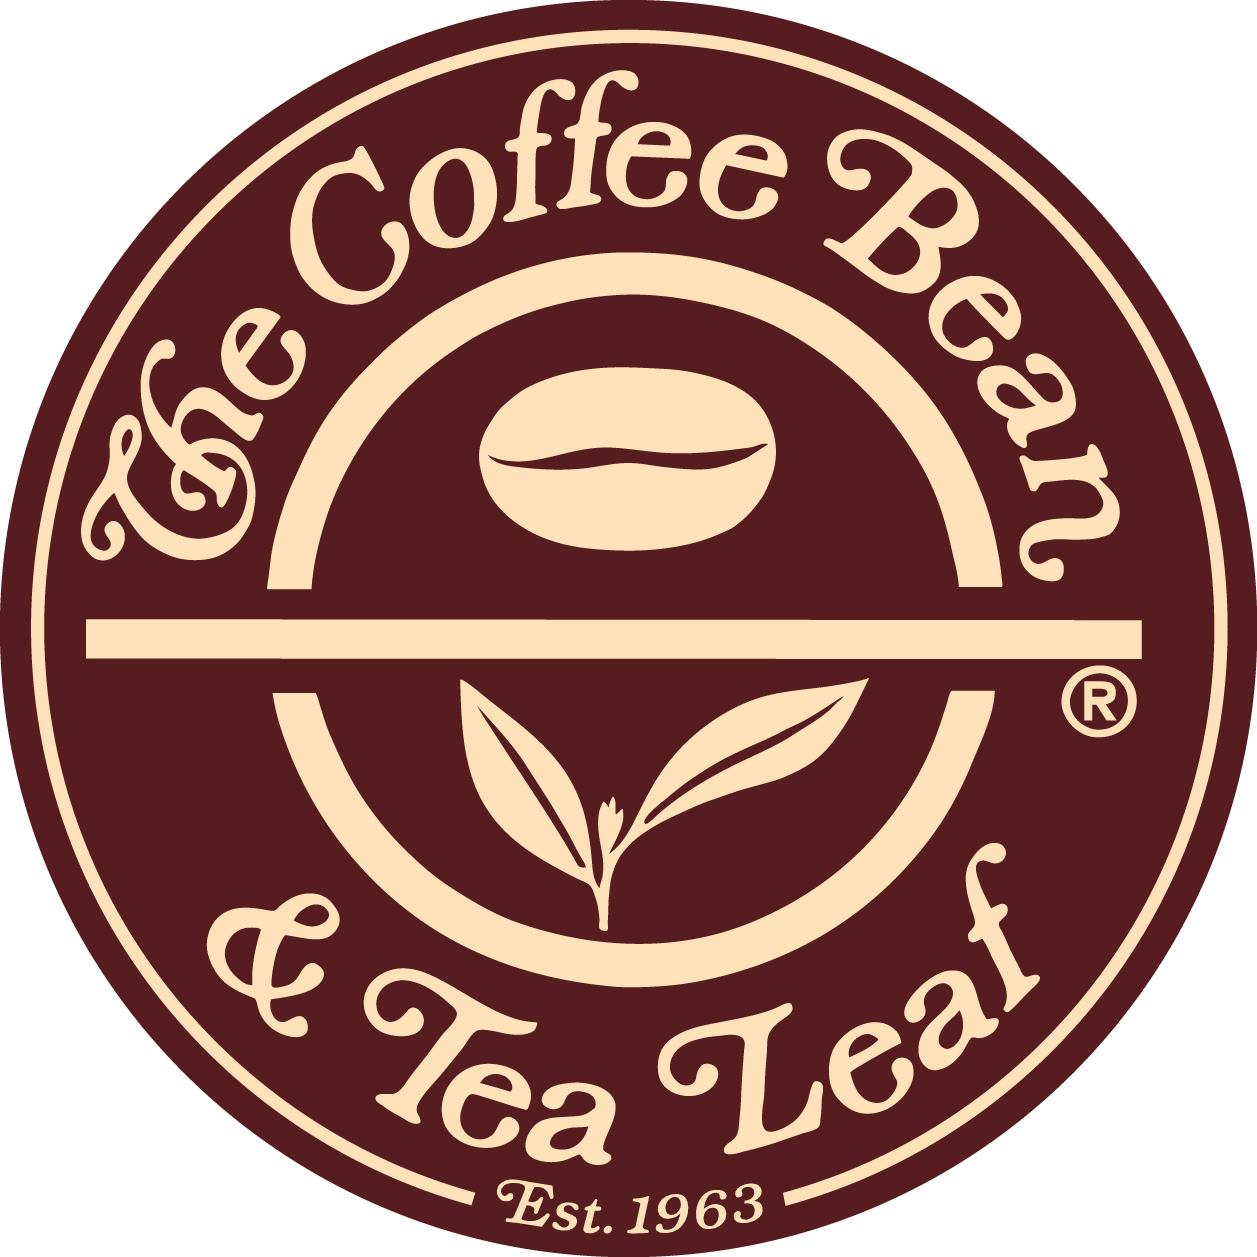 How to Get 35% Off Discount at Coffee Bean and Tea Leaf